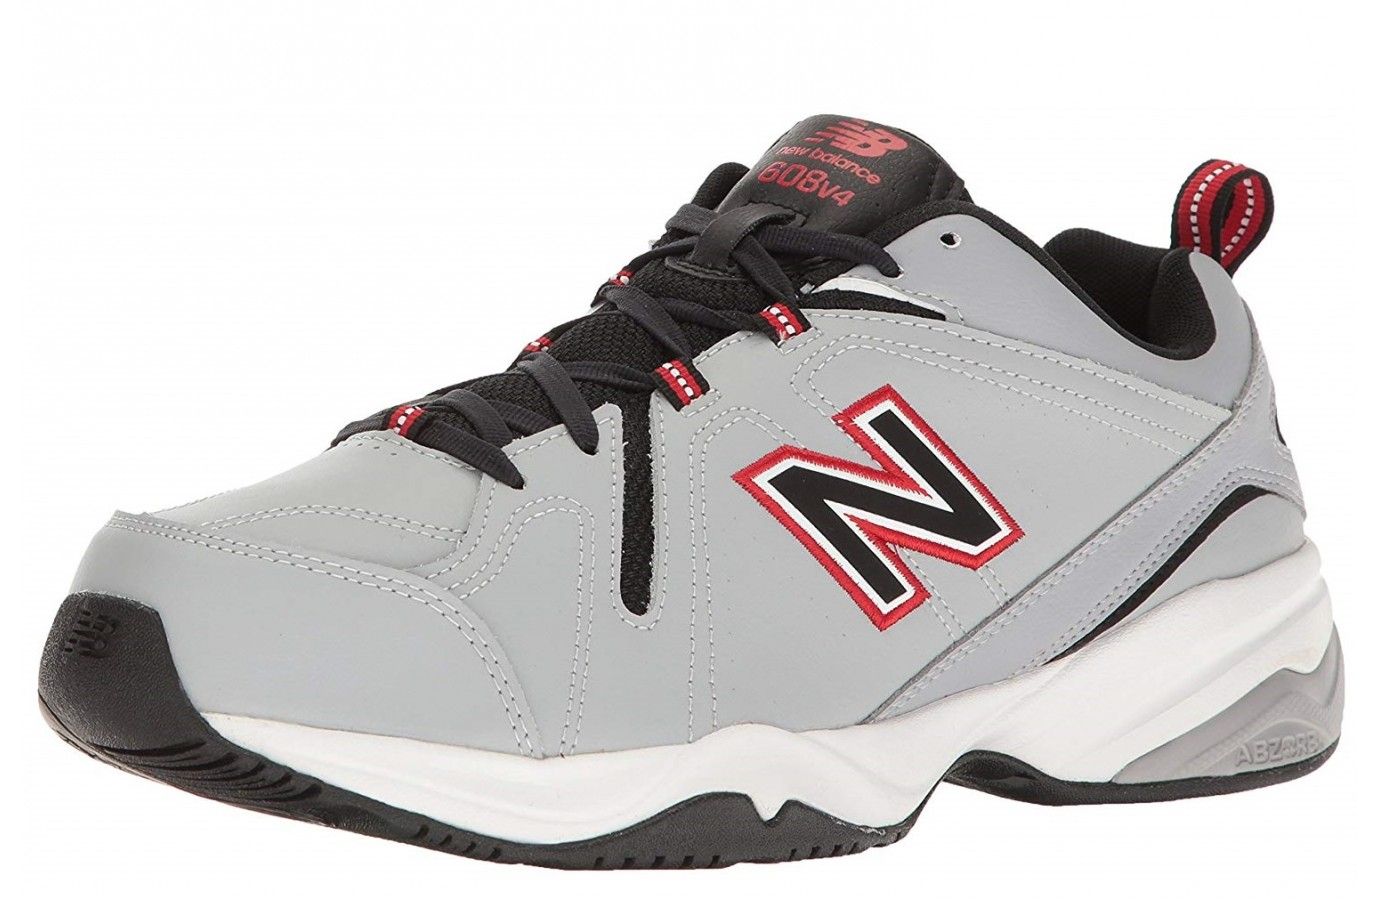 The New Balance 608v4 offers a leather upper for a closer fit across the top of the foot.